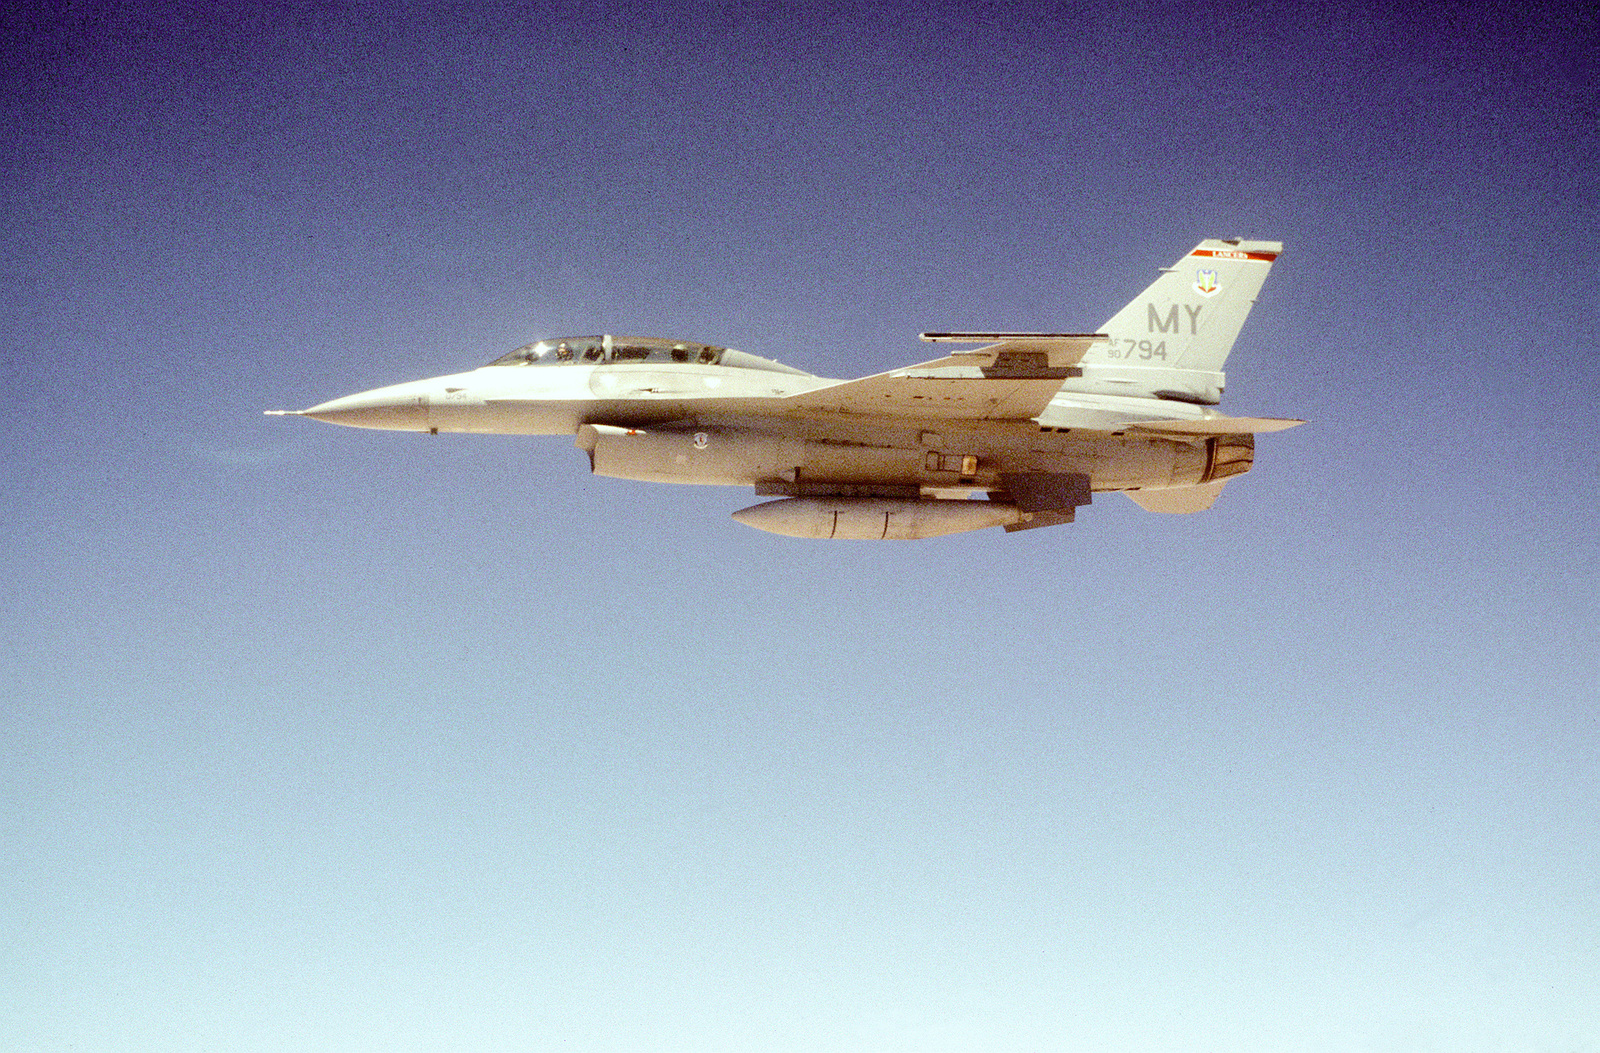 An F-16D Fighting Falcon from the 68th Fighter Squadron, Moody Air Force Base, Georgia, after being refueled, flies a mission overJordan in support of the Air Power Expeditionary Force. An ancillary mission of the Force is to assist US Air Force and other multinational forces operating in Saudi Arabia and other nearby countries patrol the no-fly zone over southern Iraq